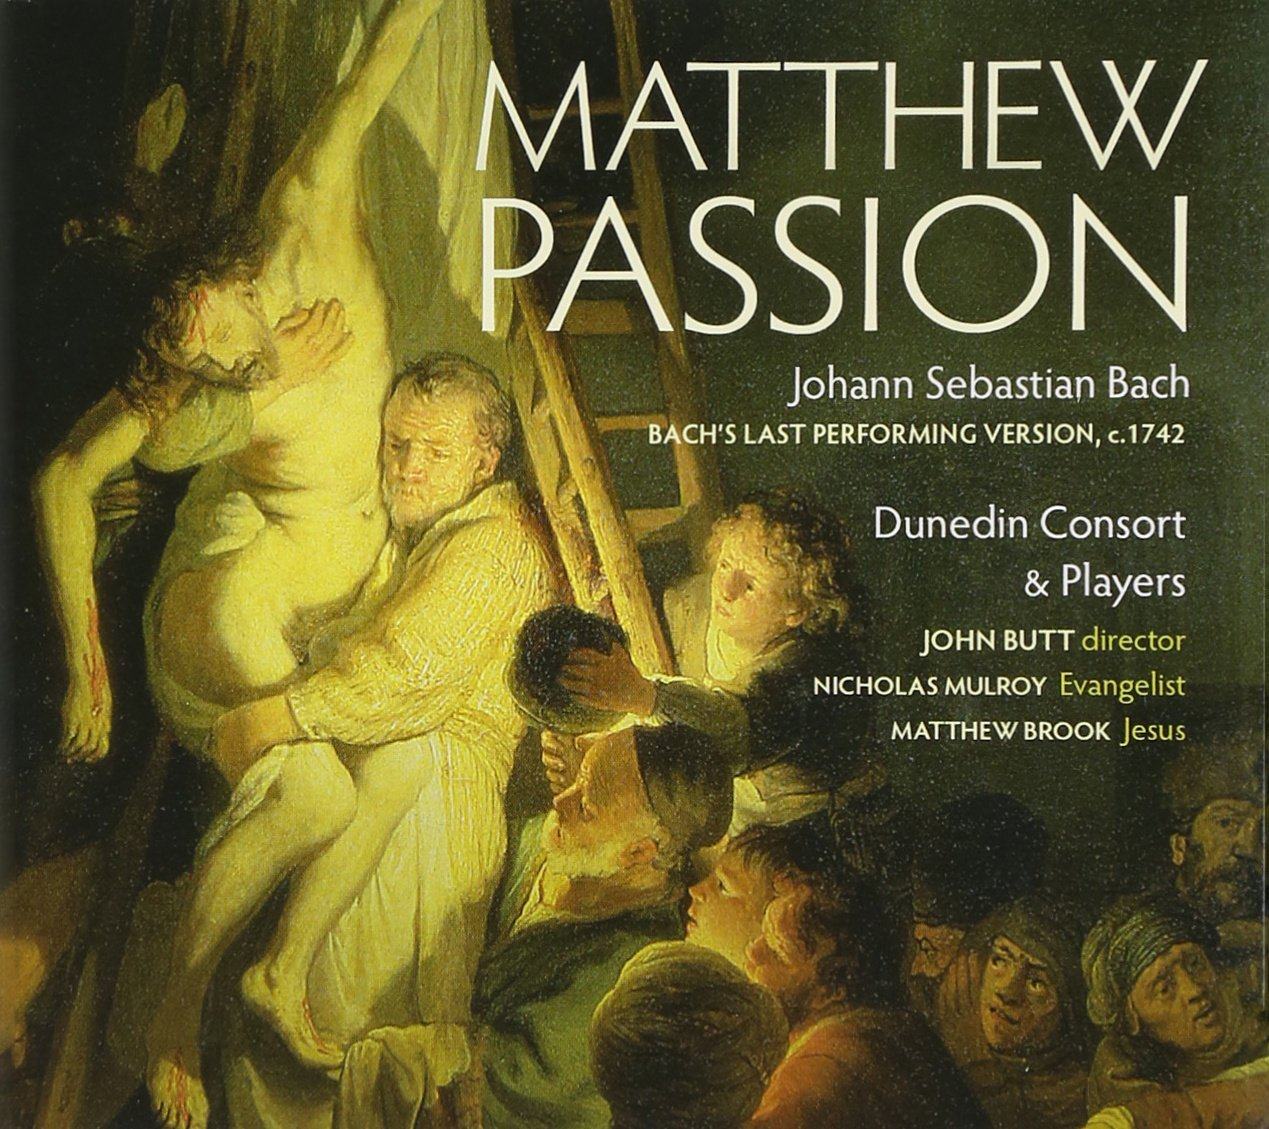 Matthew Passion Dunedin Consort John Butt Linnrecords 24 88